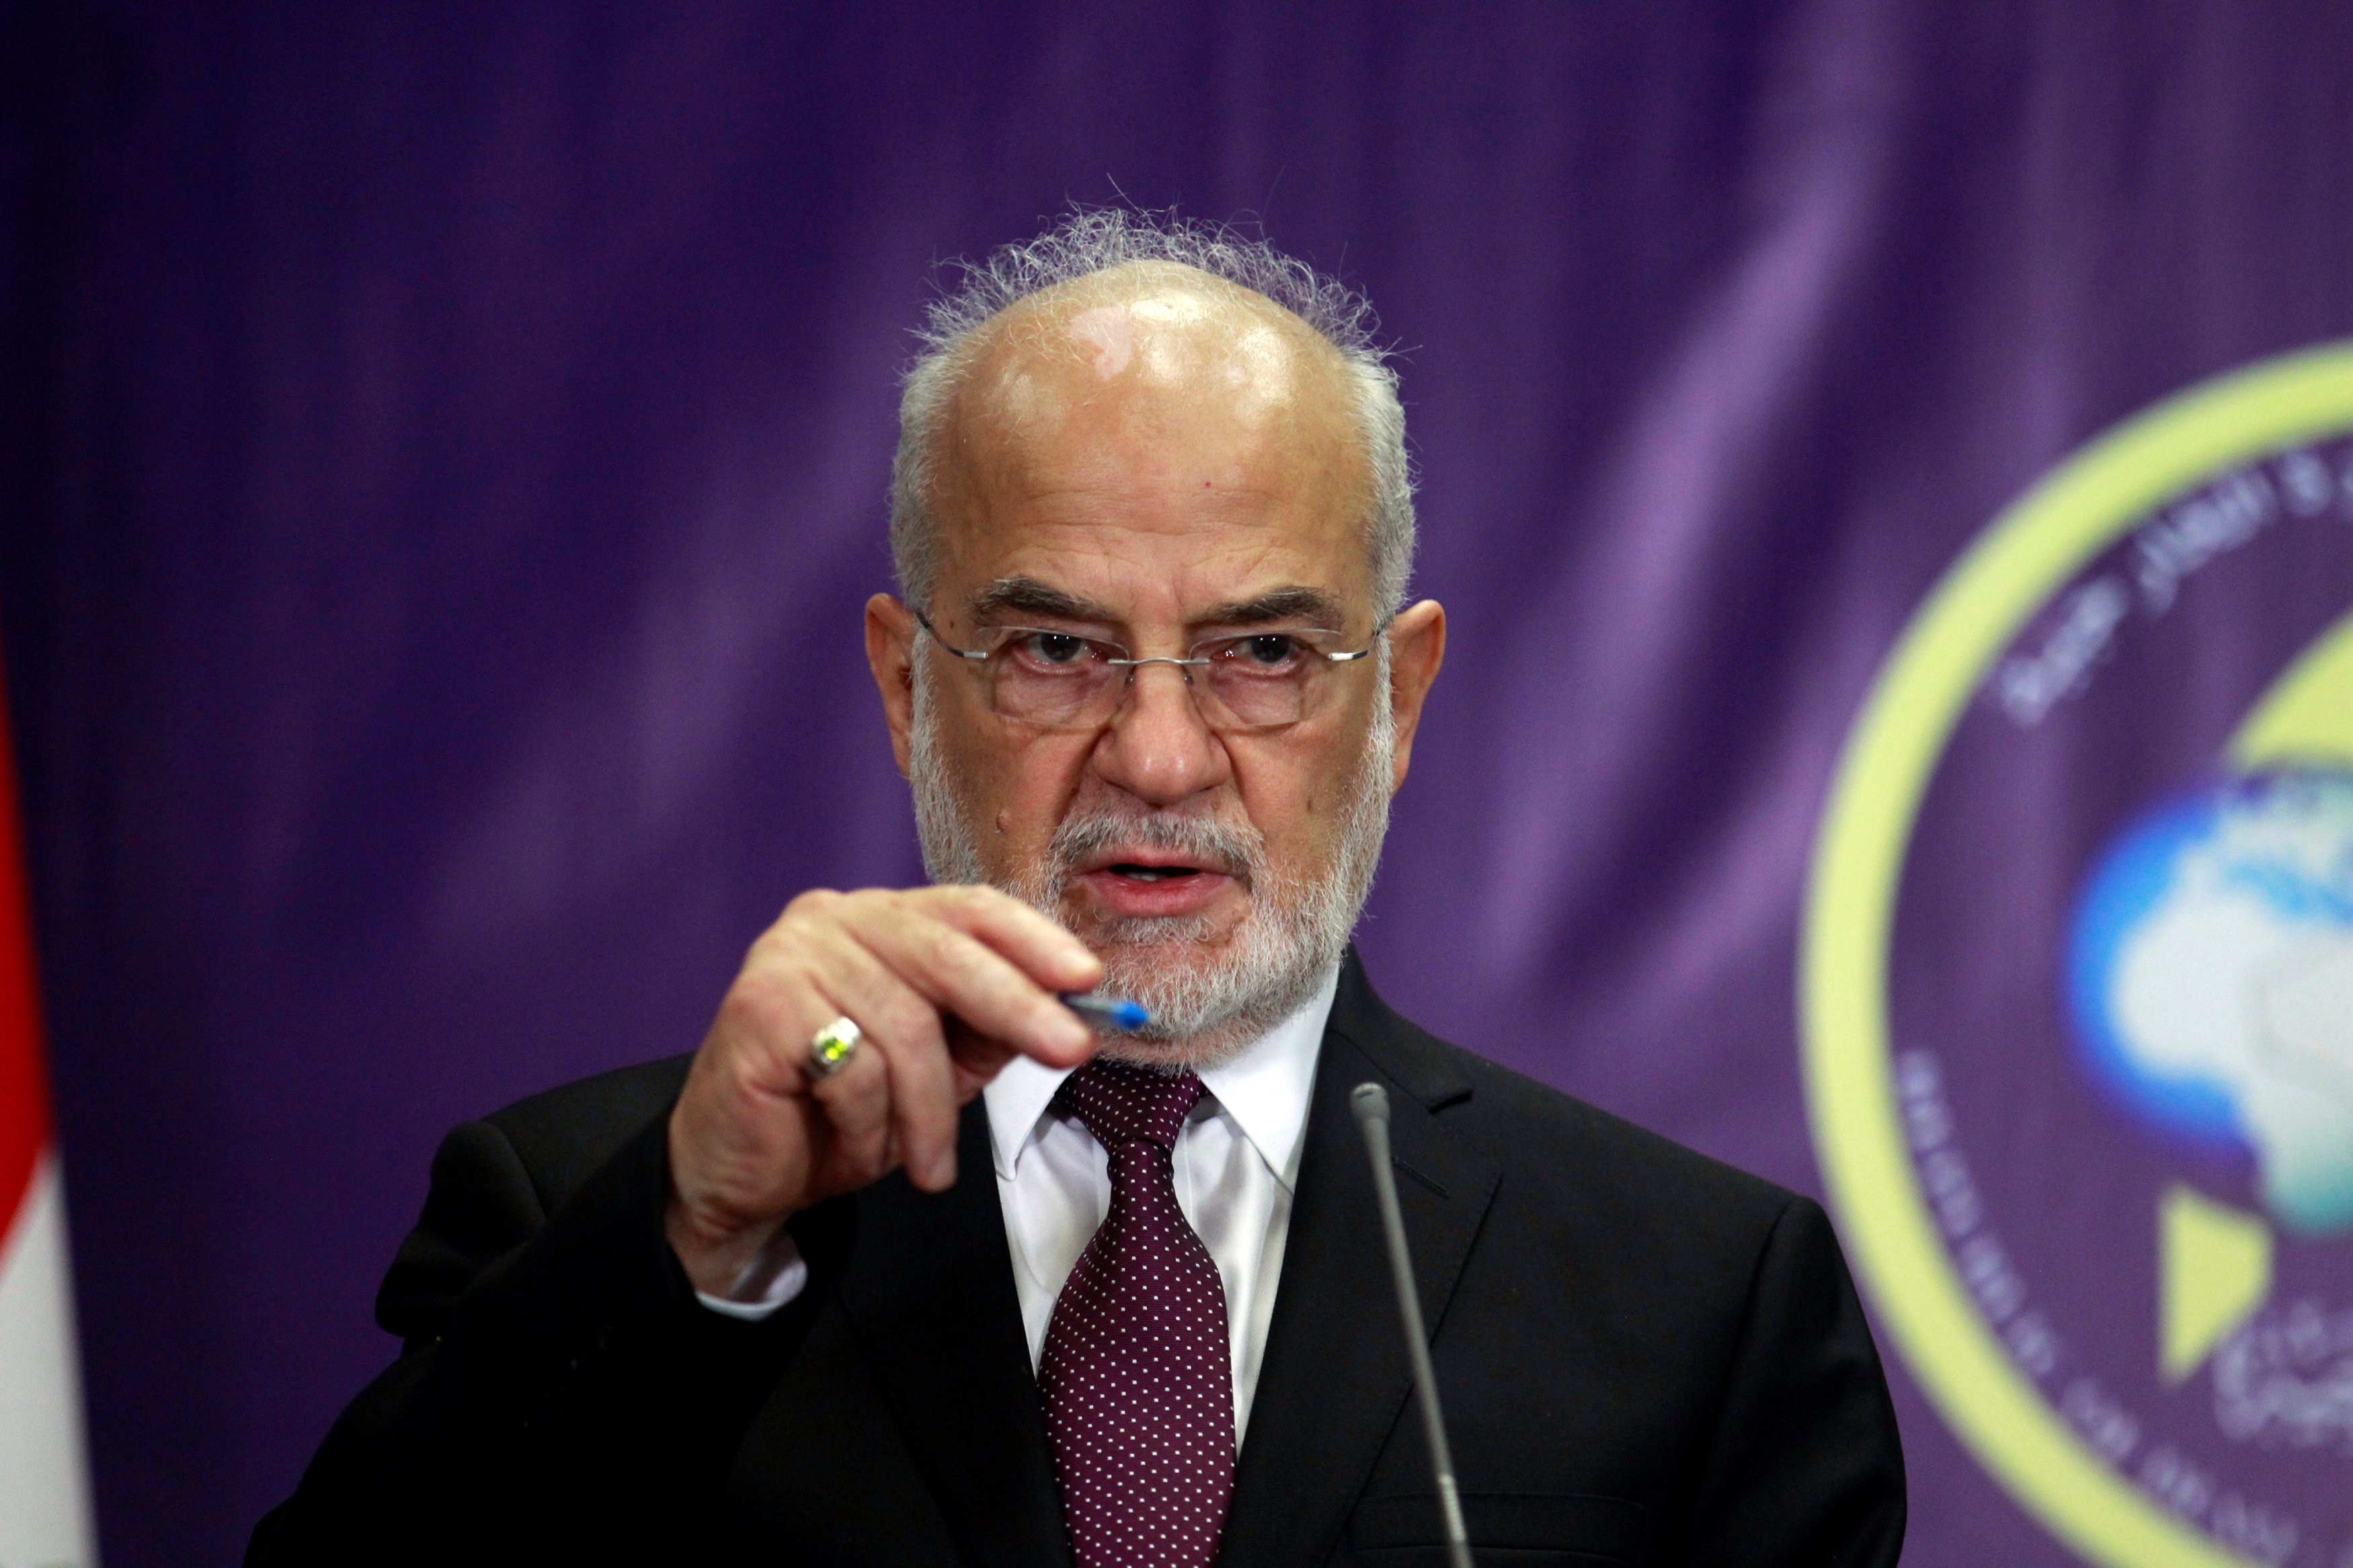 FILE PHOTO: Iraqi Foreign Minister Ibrahim al-Jaafari speaks to reporters during a news conference in Baghdad, Iraq July 19, 2017. REUTERS/Khalid al Mousily